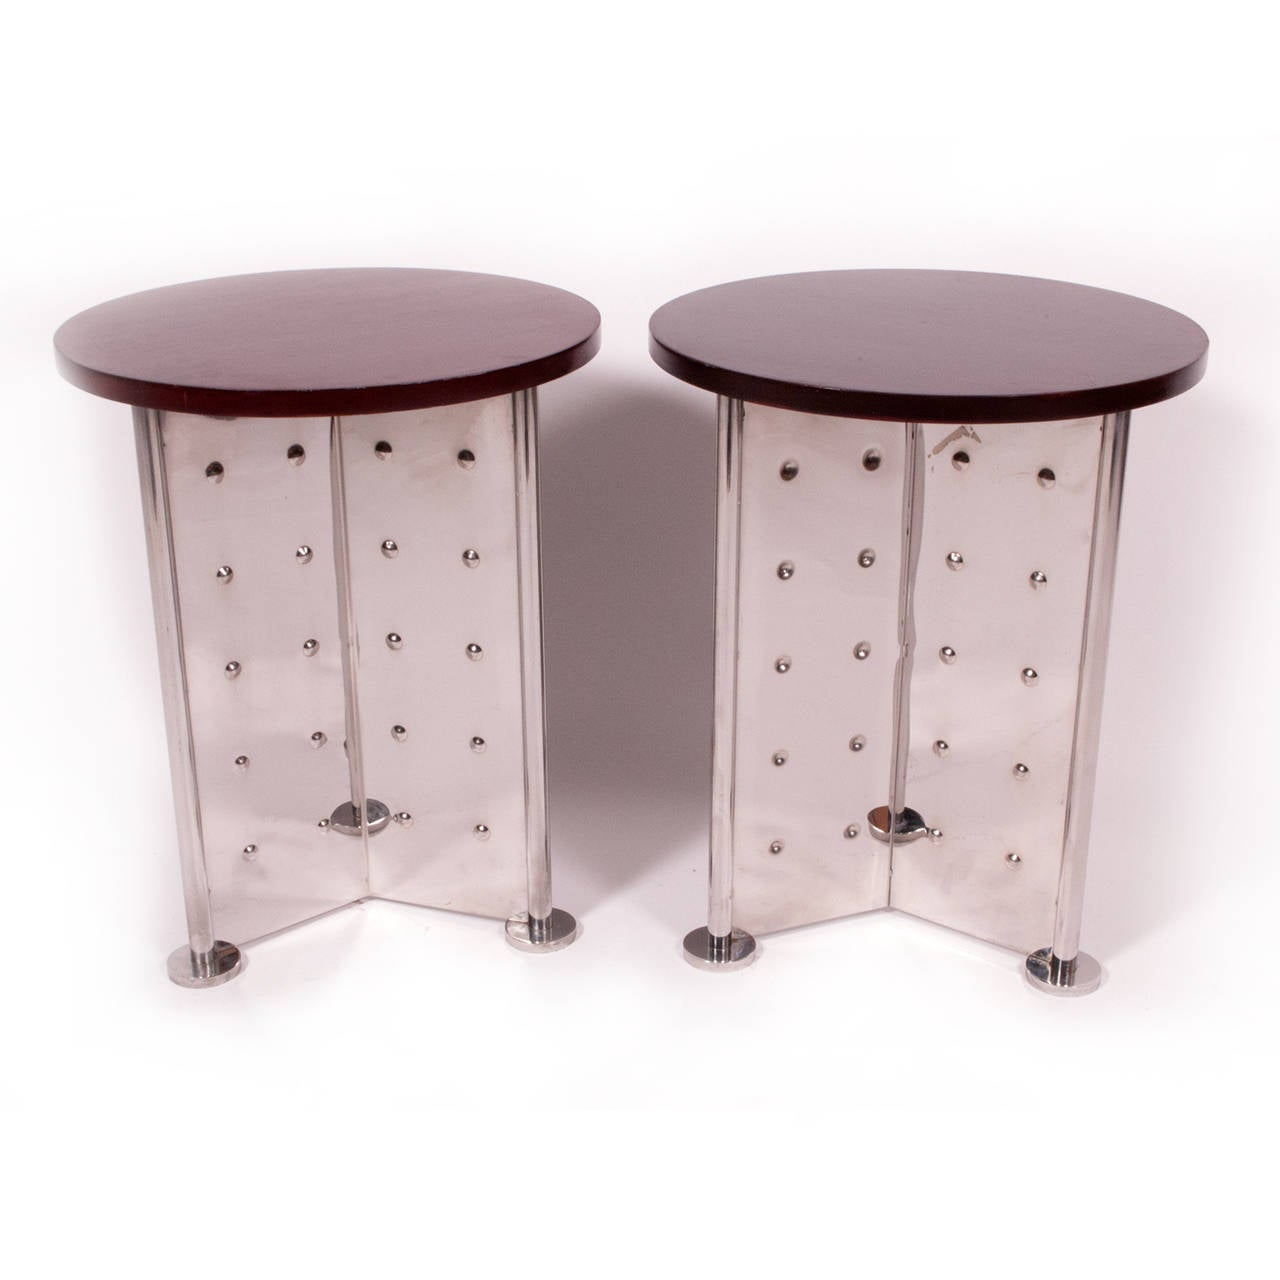 Pair of side tables by philippe starck for royalton at 1stdibs for Philippe starck tables